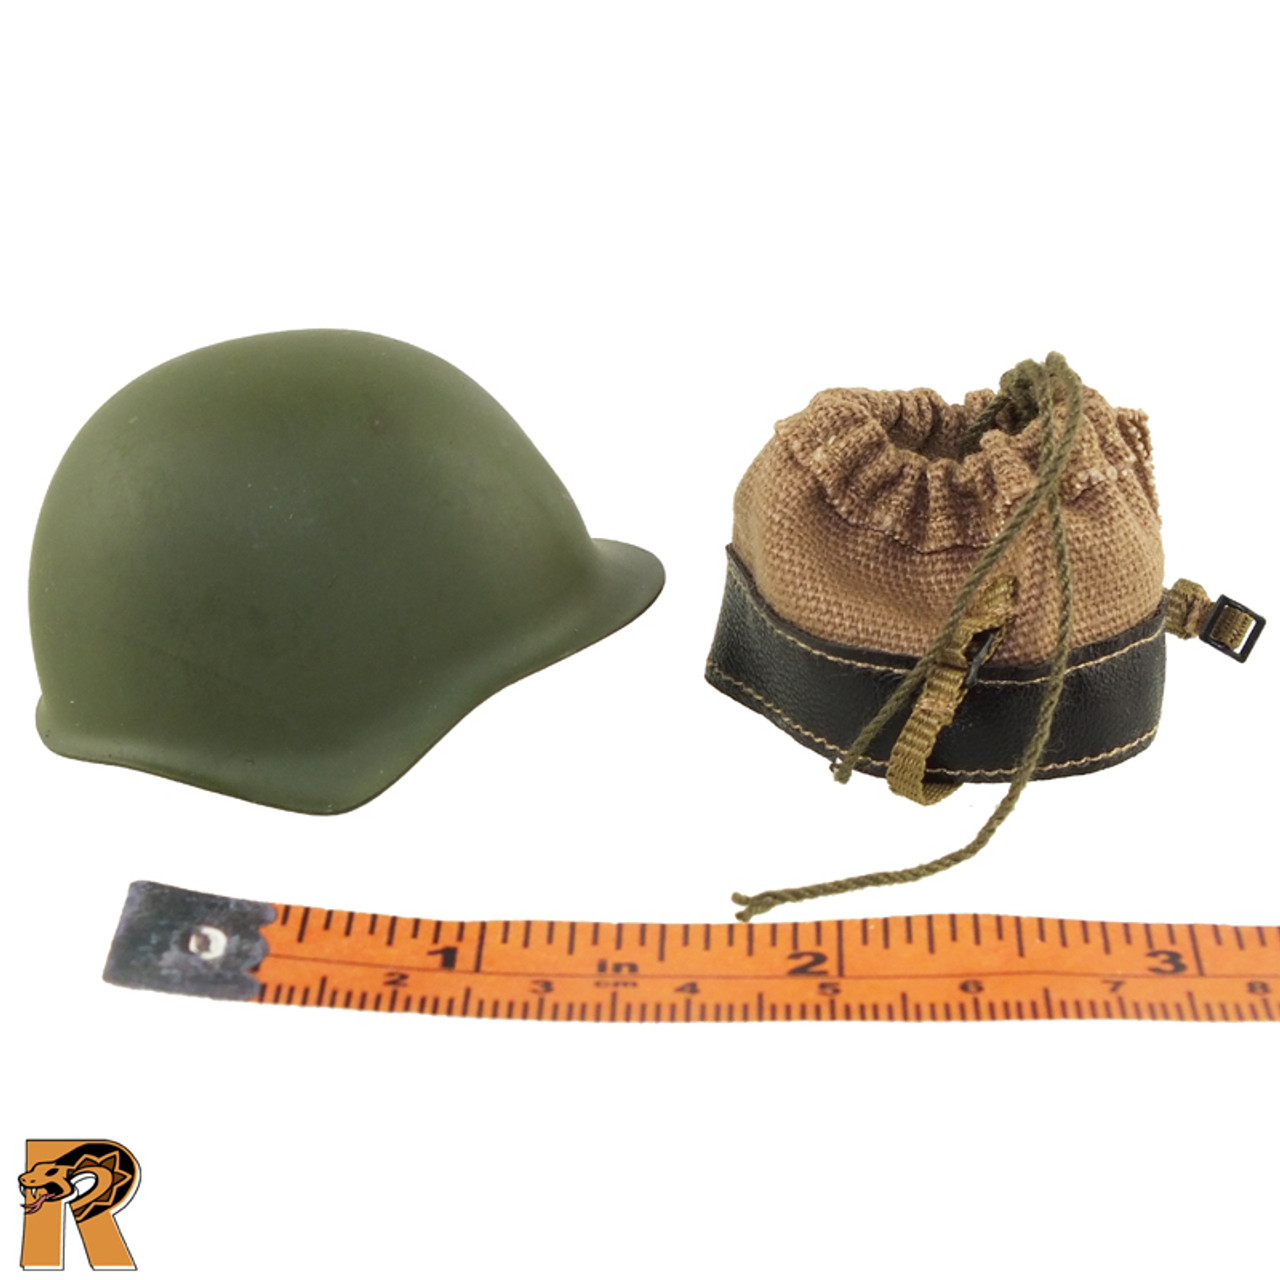 Soviet Red Navy - Helmet & Liner - 1/6 Scale